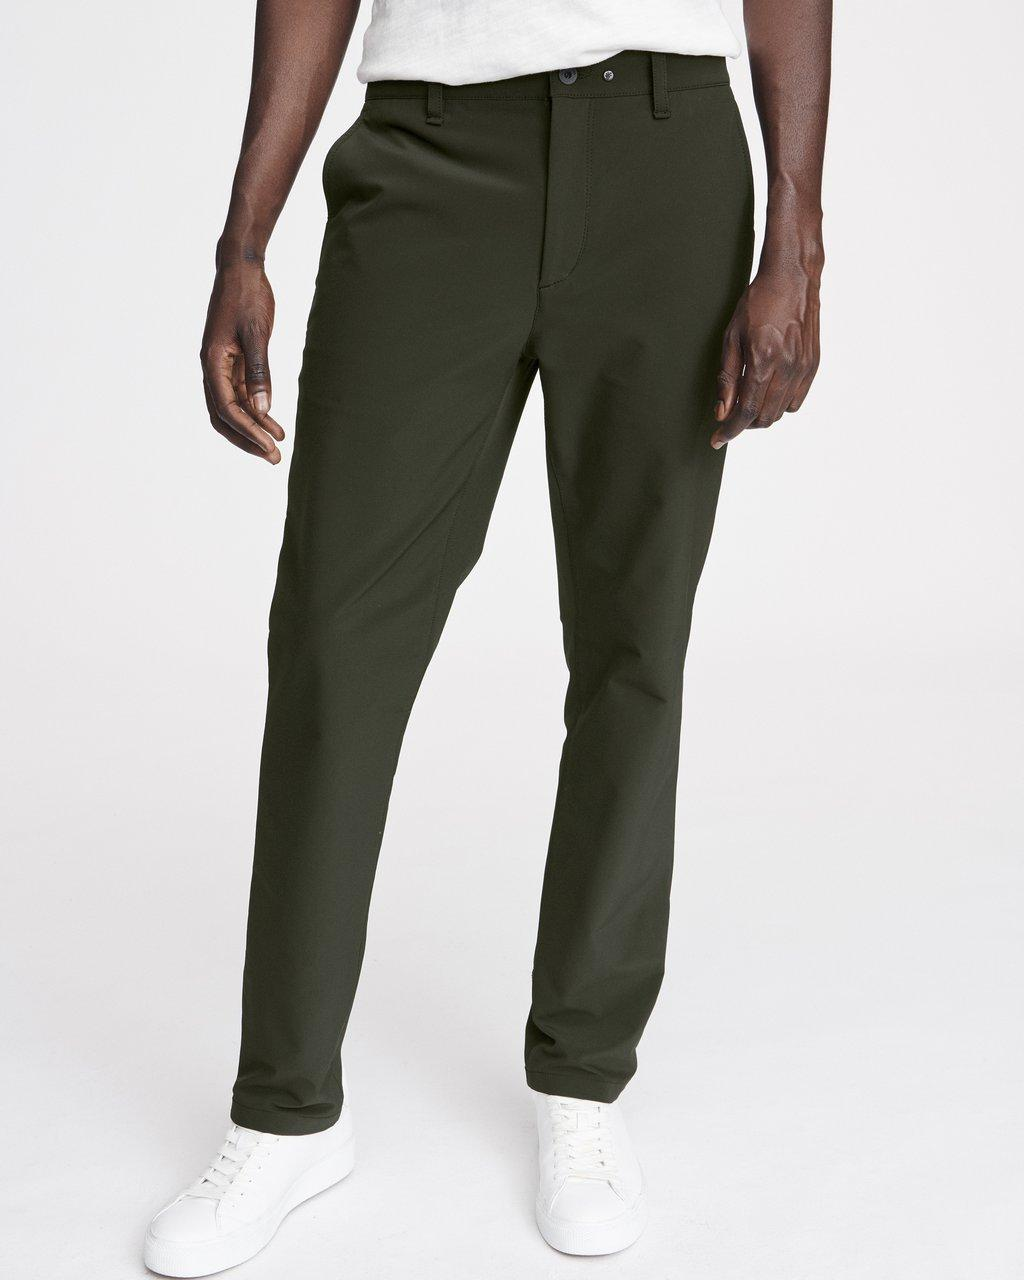 TECH FIT 2 CHINO